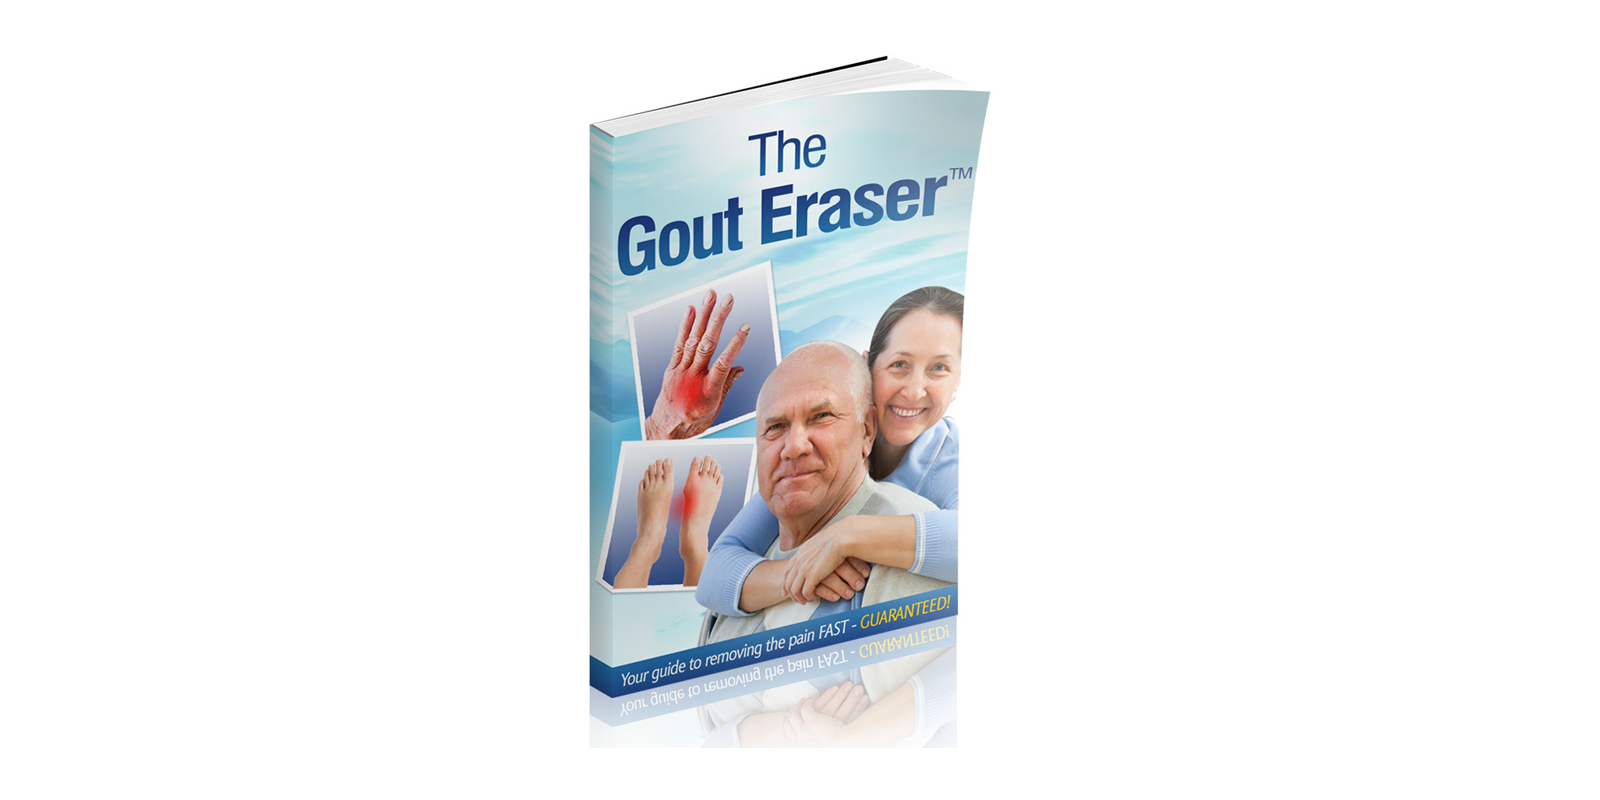 The Gout Eraser guide